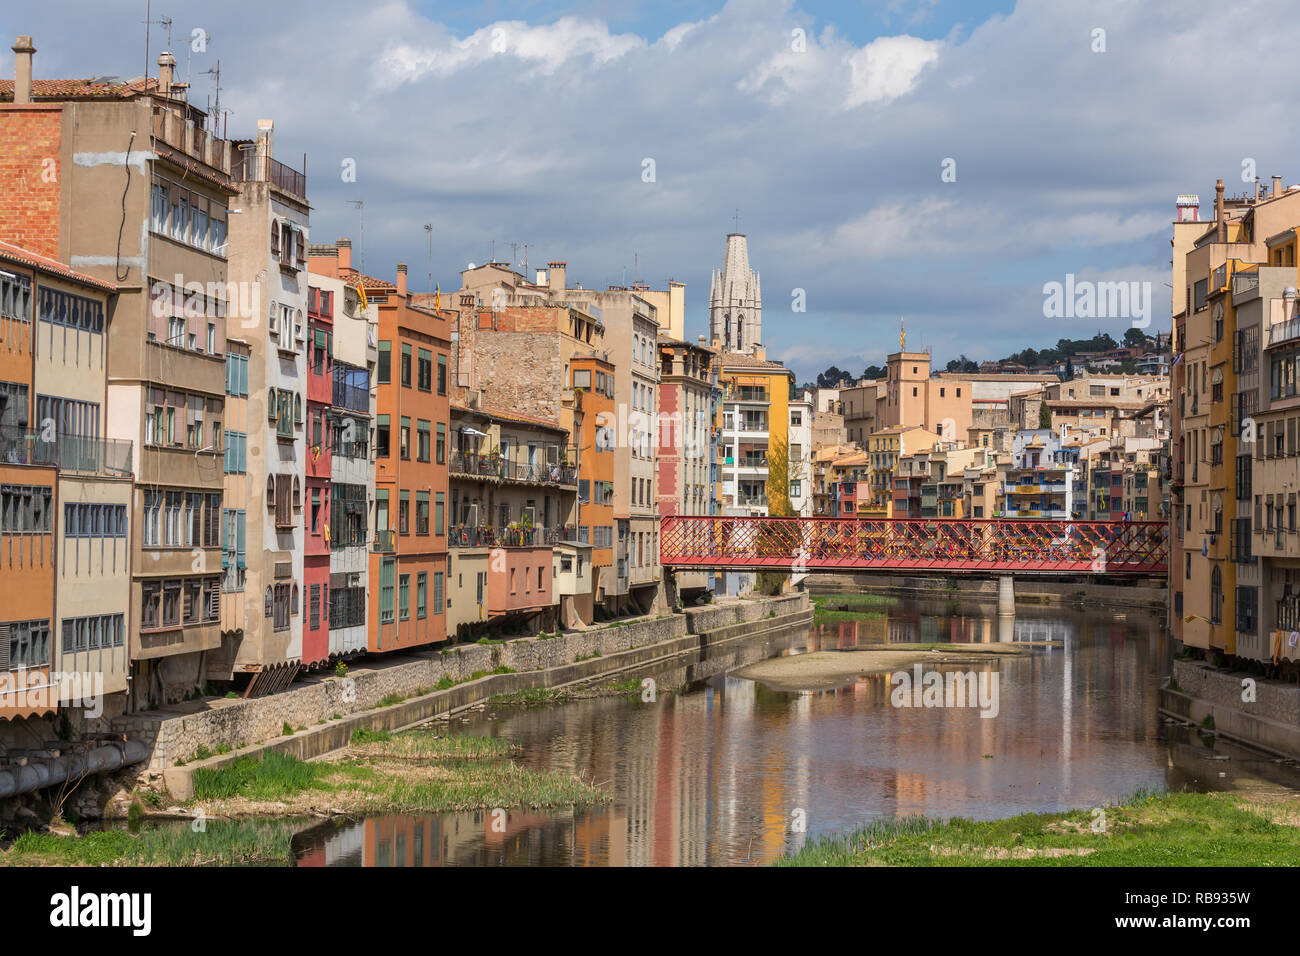 Colorful houses in Girona, Catalonia, Spain. Stock Photo